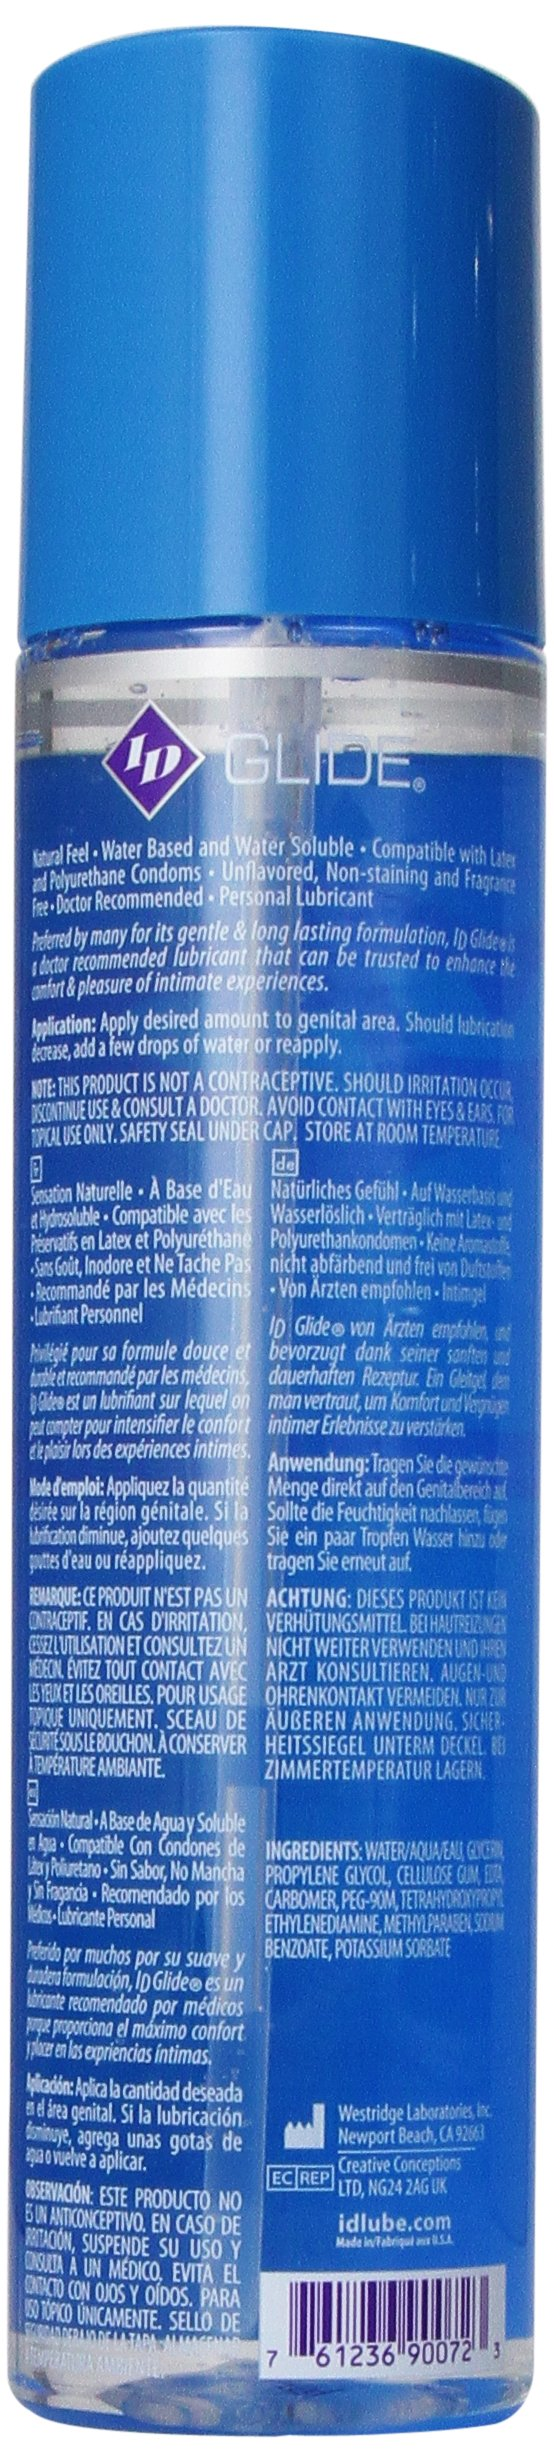 ID Glide Personal Water Based Lubricant, 17-Ounce Bottle by ID Lubricants (Image #3)